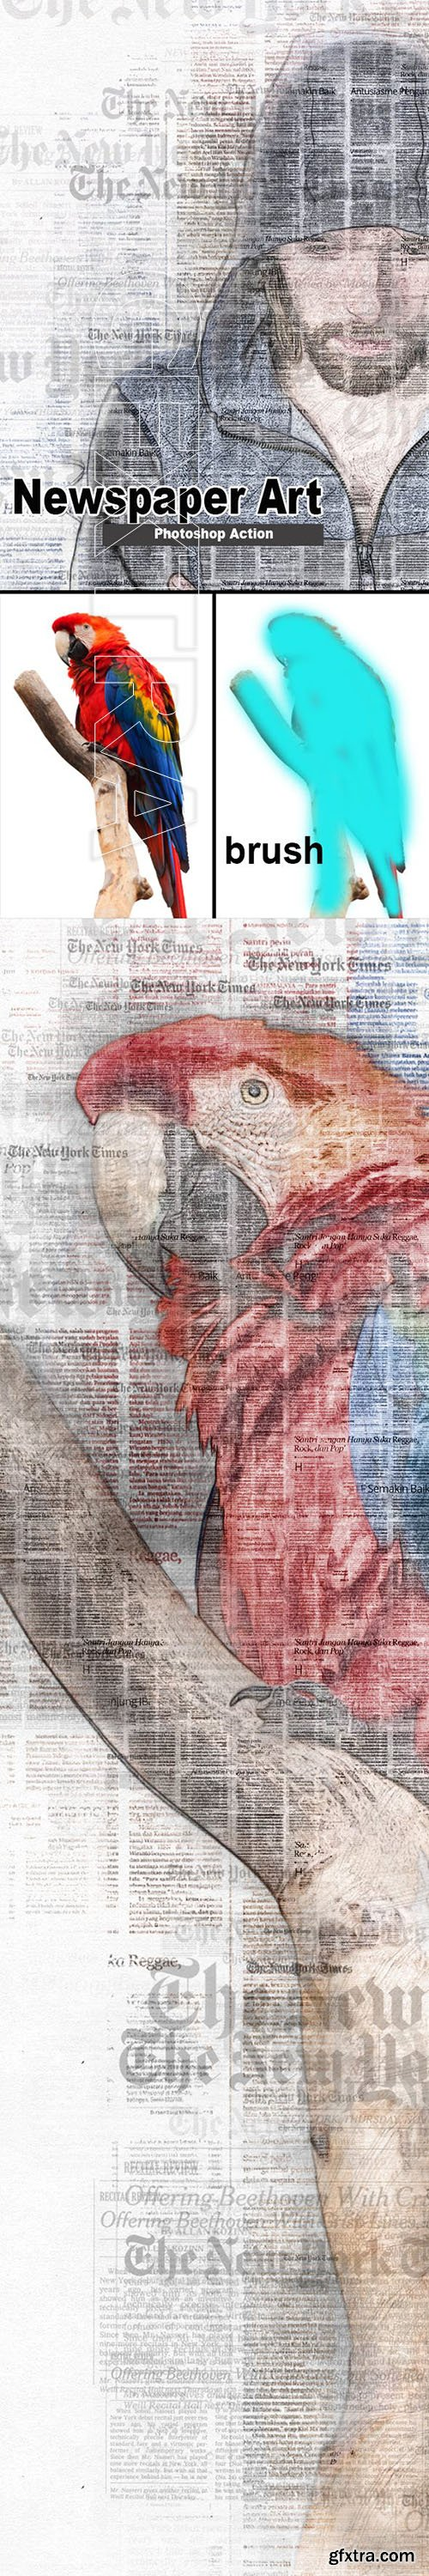 GraphicRiver - Amazing Newspaper Art Photoshop Action 23310693